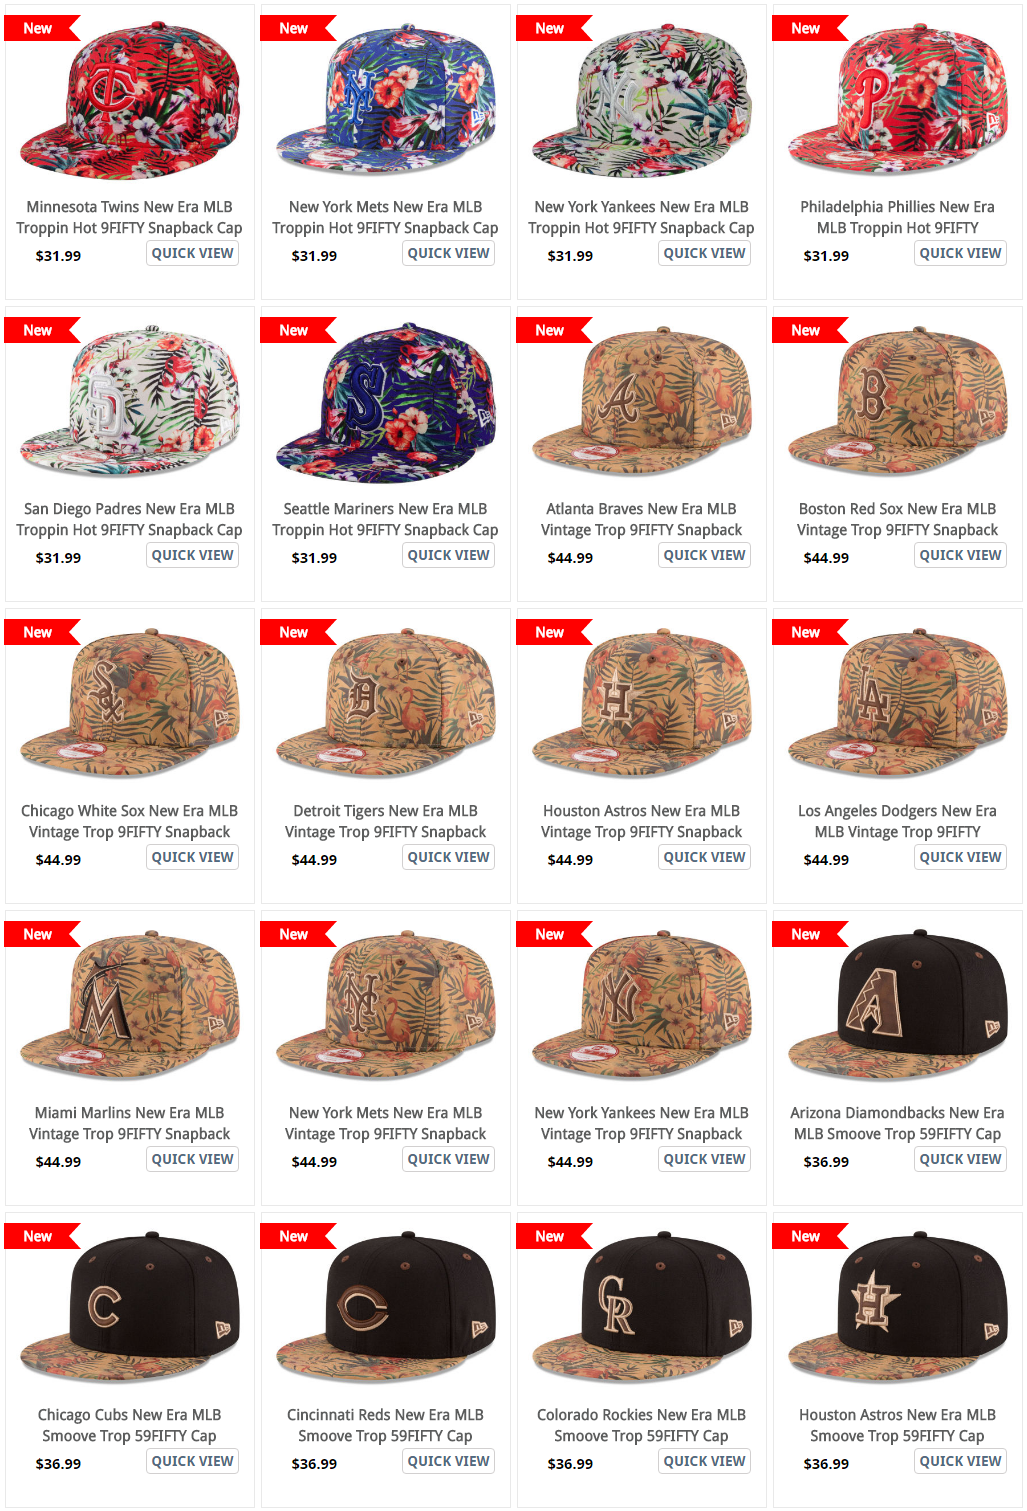 4a99fb7dddf ... MLB Tropical Print Vintage Hat from New Era NEw ERa MLB Tropical Print  Smoove Tropic Hats